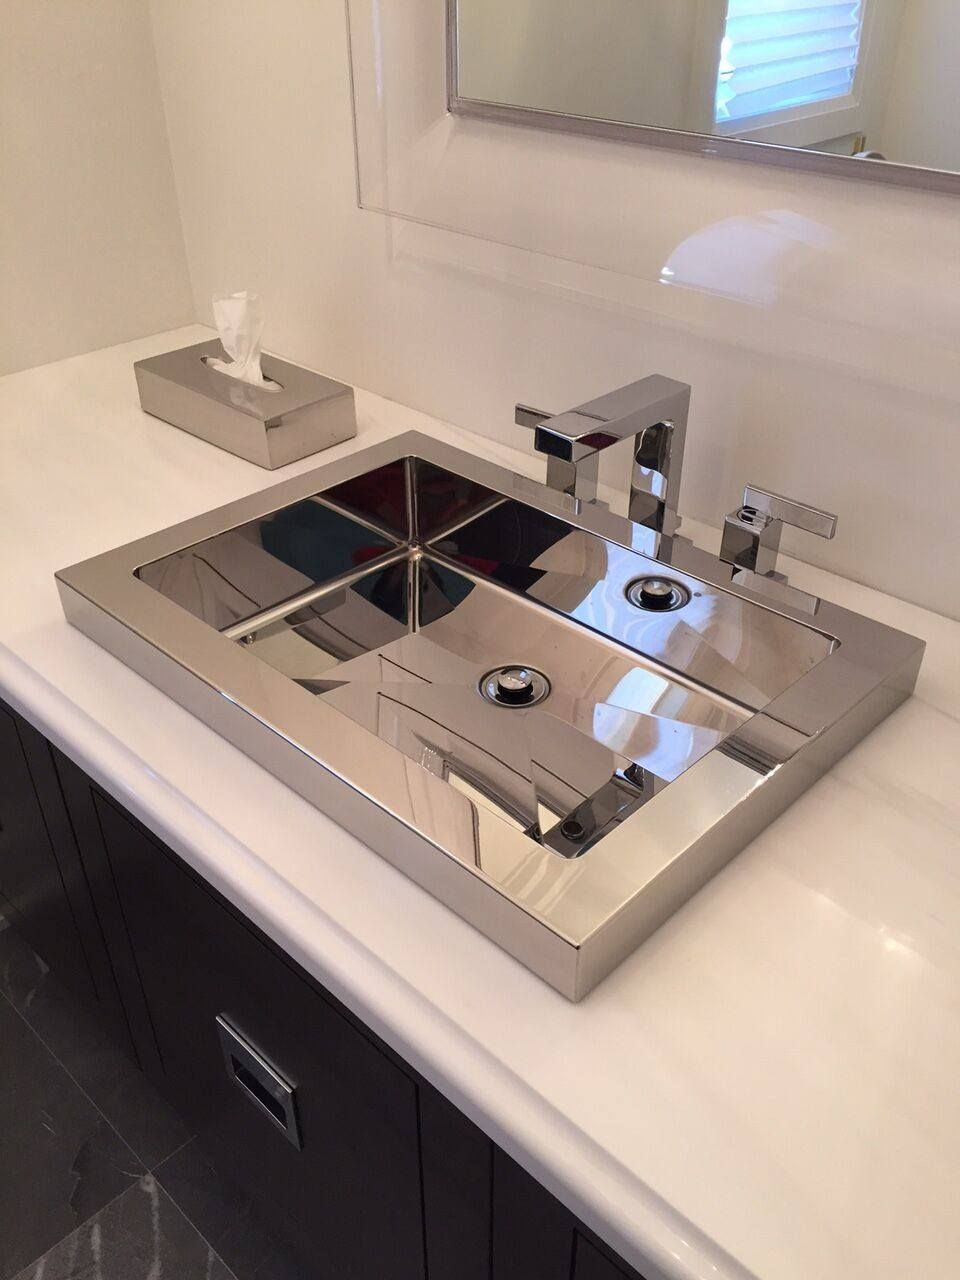 Cantrio Stainless Steel Rectangle Drop In Bathroom Sink Ms 023